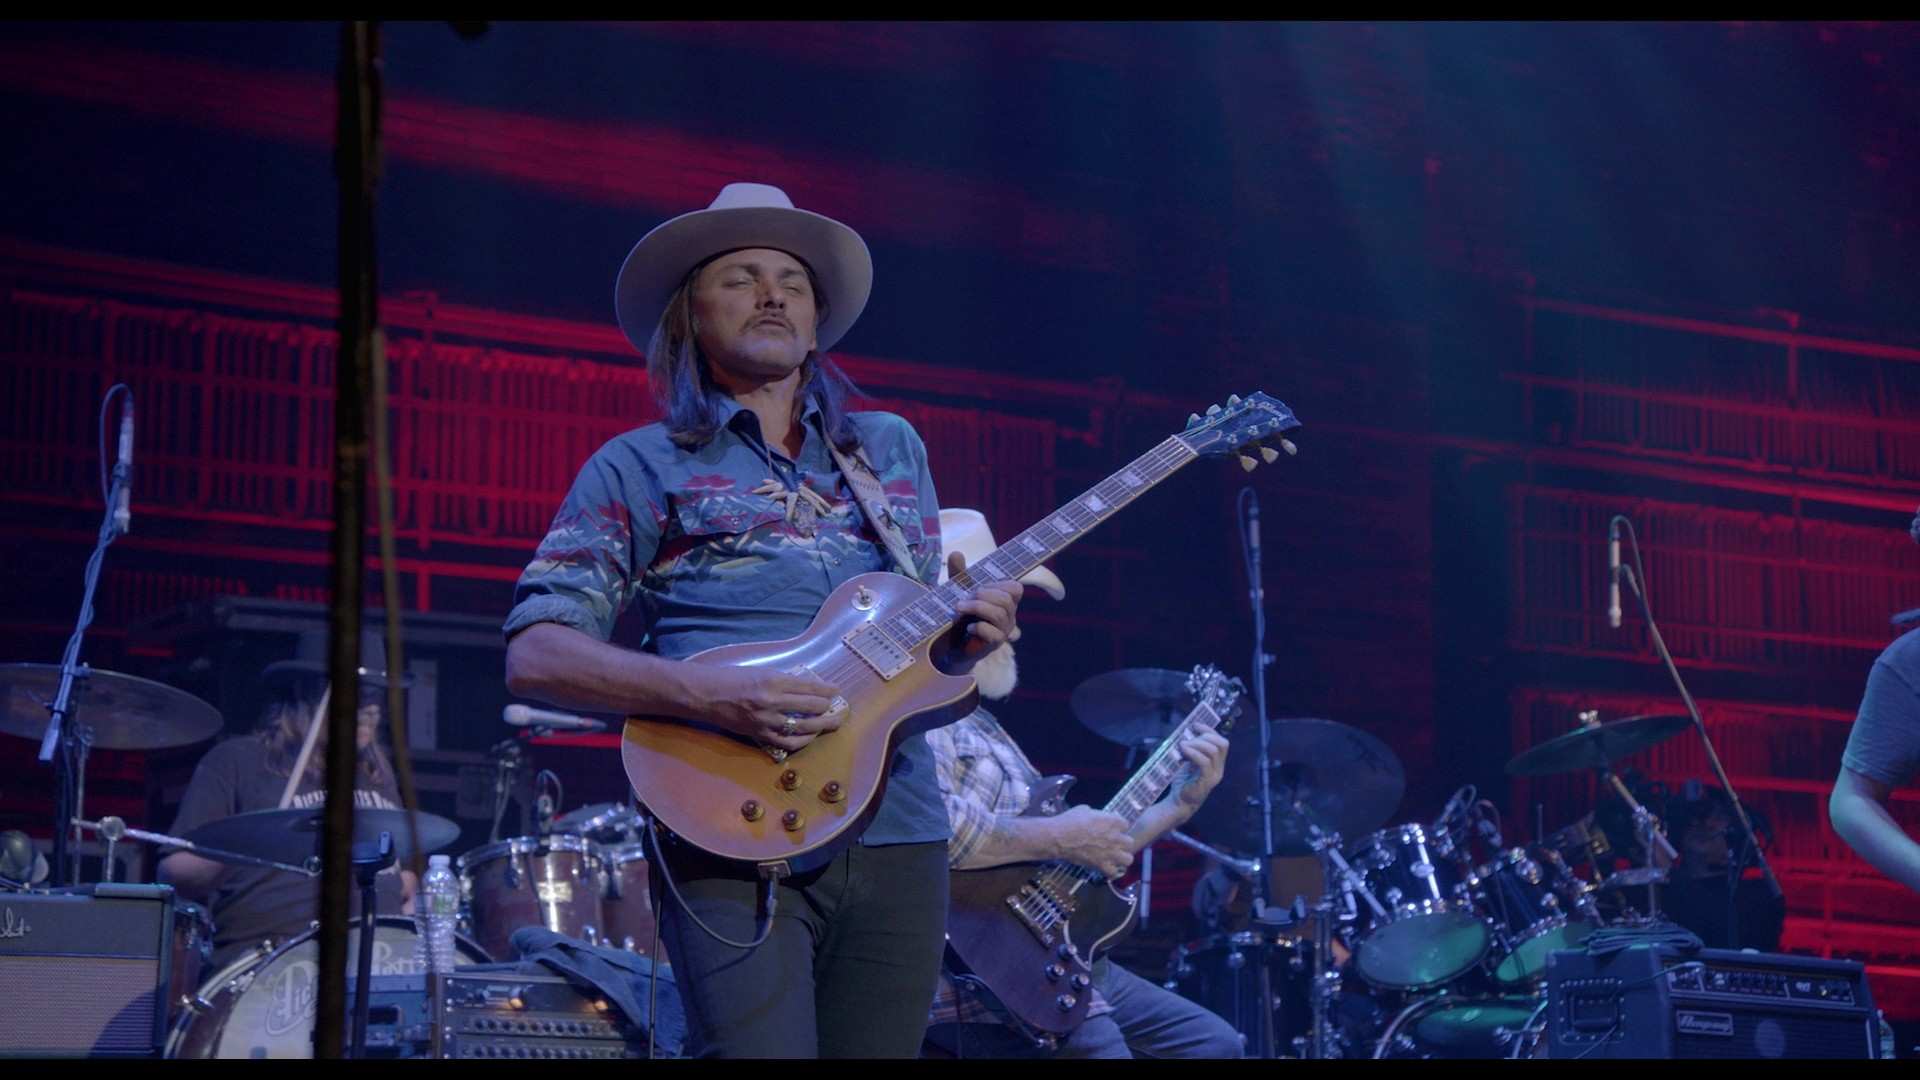 The Dickey Betts Band - Ramblin' Man: Live At The St. George Theatre (2019) {The Allman Brothers Band family} Blu-Ray